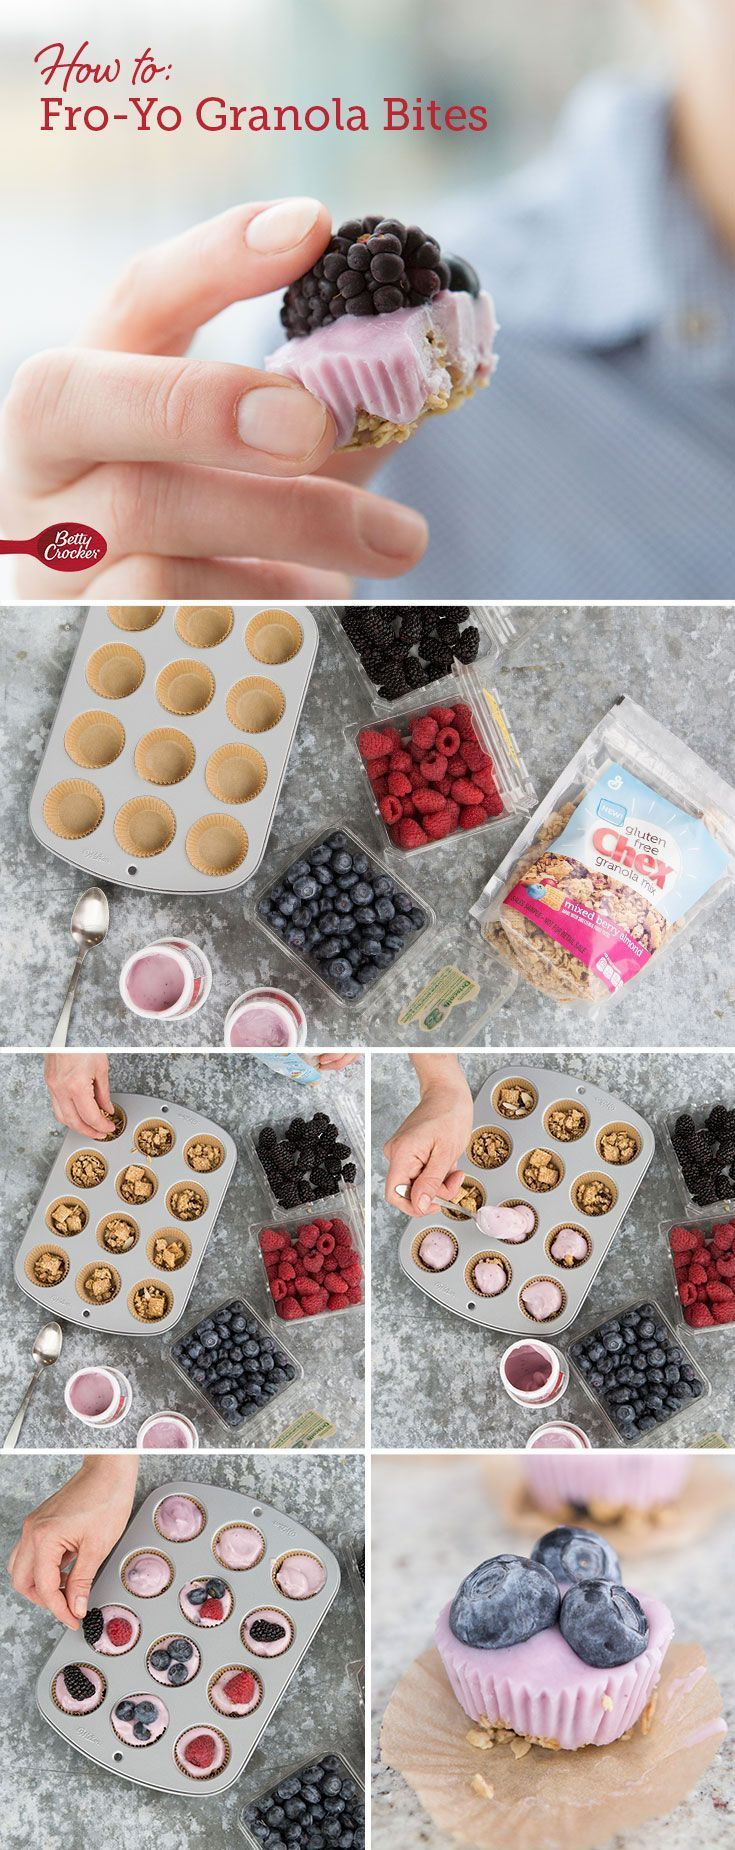 Protein-packed, portable and infinitely pop-able, you can mix and match the ingredients for these gluten-free snacks to fit your family's tastes.